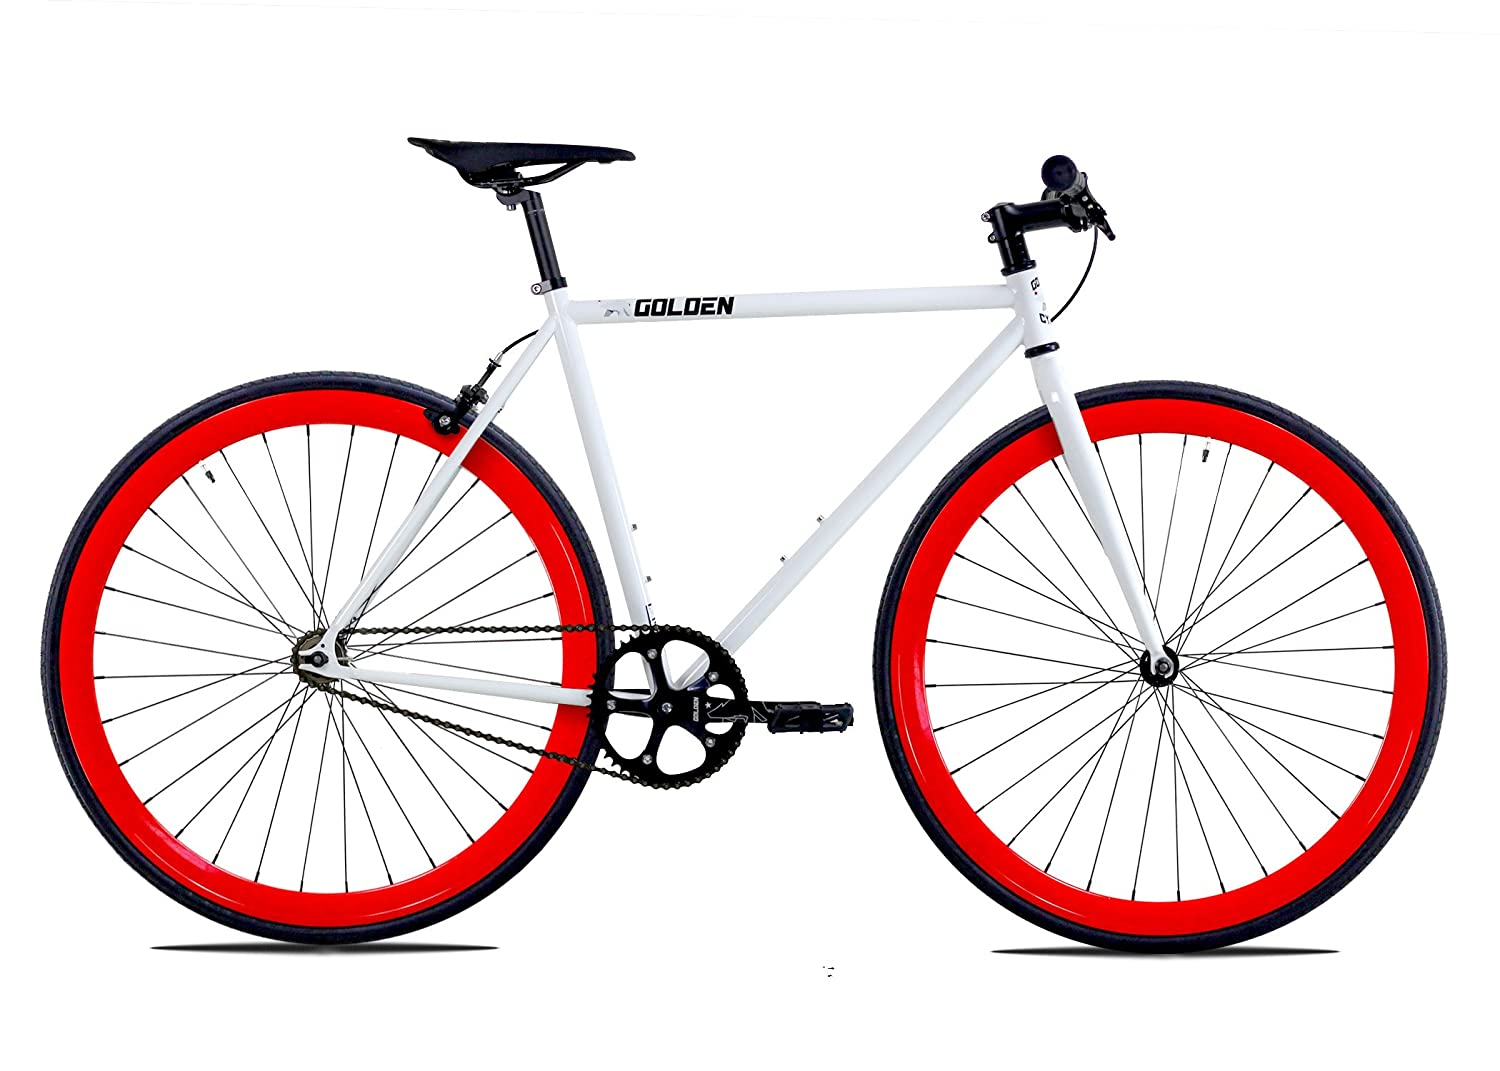 Amazon.com : Golden Cycles Single Speed Fixed Gear Bike with Front ...